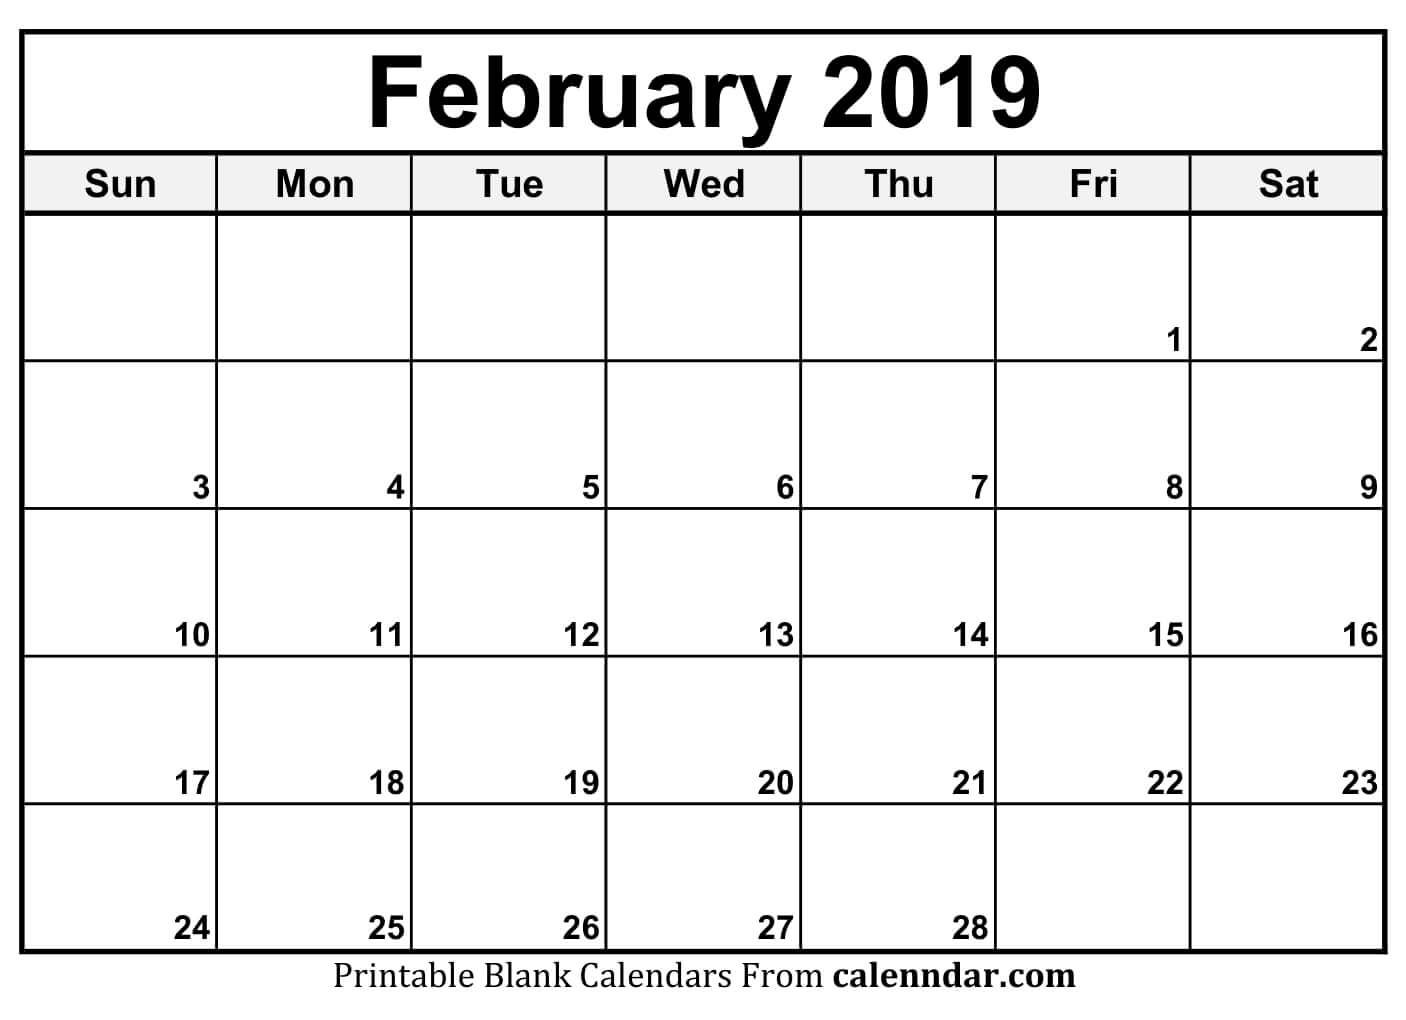 Printable Calendar For February 2019 Page - Free Printable Calendar throughout Blank Printable Calendar Pages